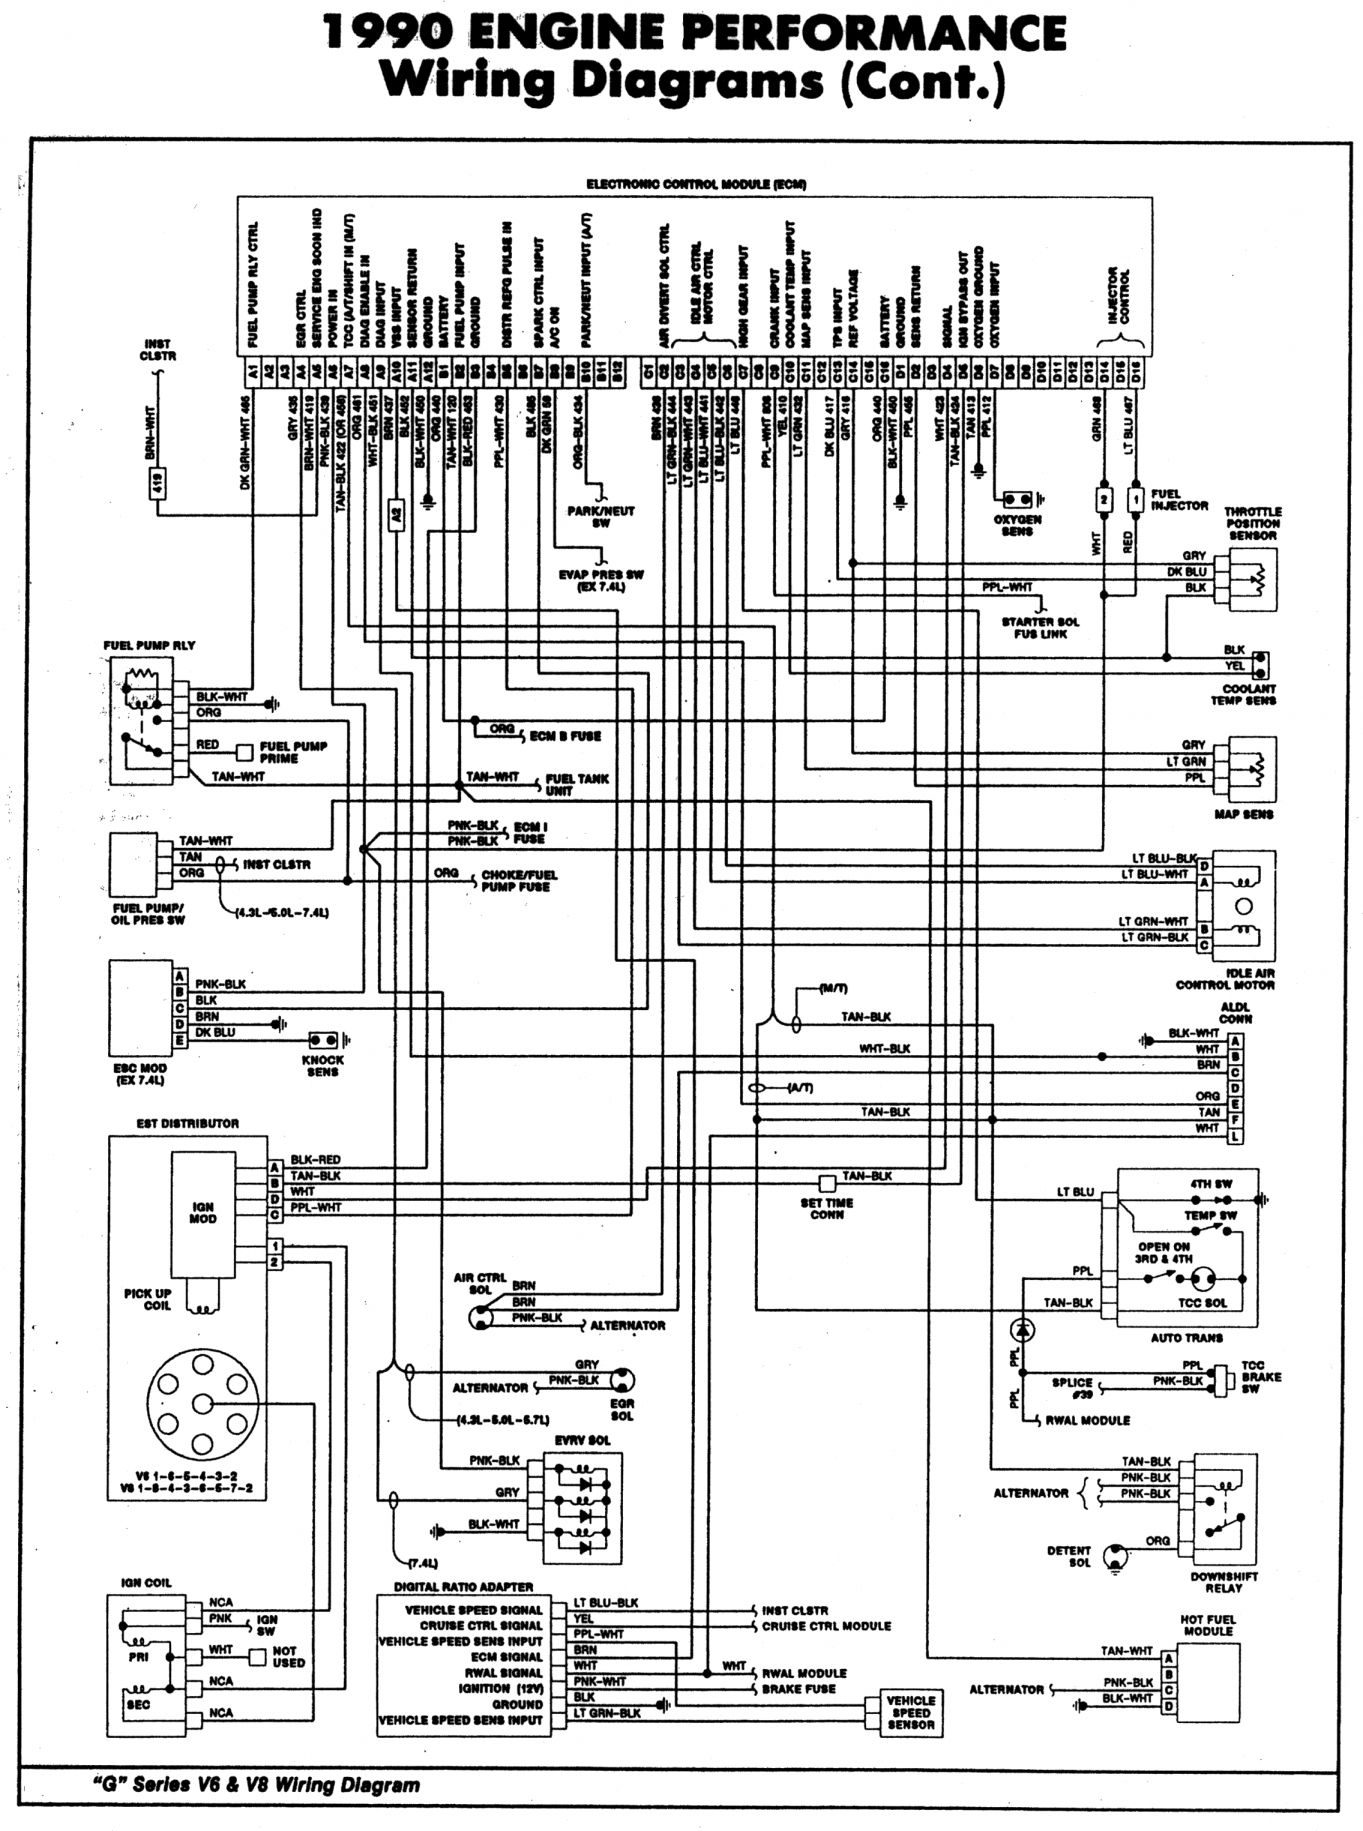 16 Wiring Diagram For 1990 Chevy Pickup With Diesel Engine Electrical Wiring Diagram Chevy Trucks Chevy Pickups